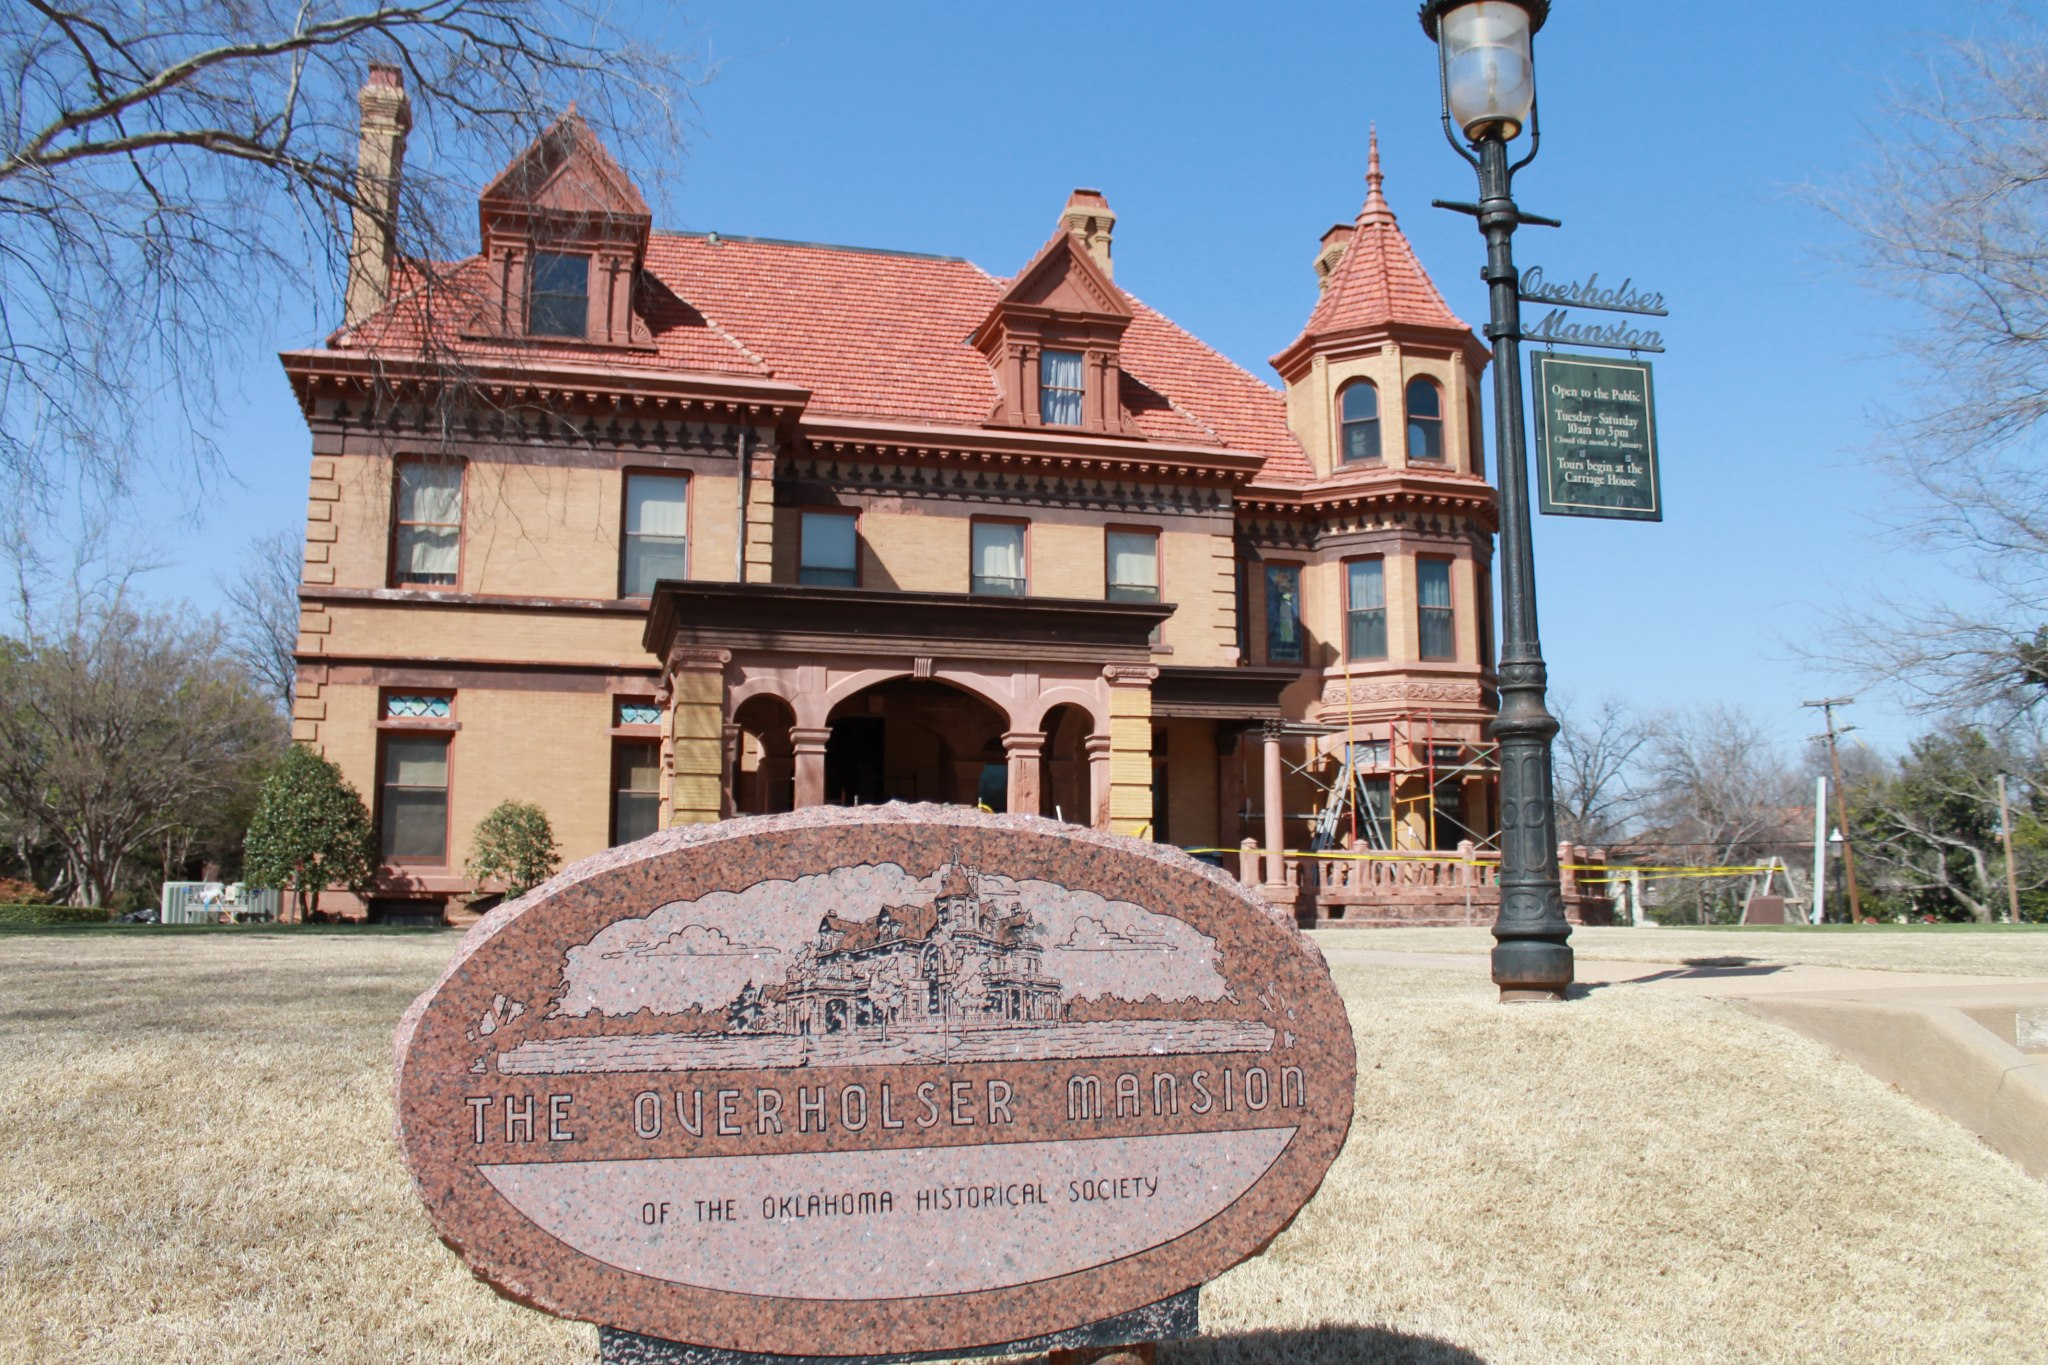 The Overholser Mansion was sold to the Oklahoma Historical Society in 1972 allowing for its preservation.